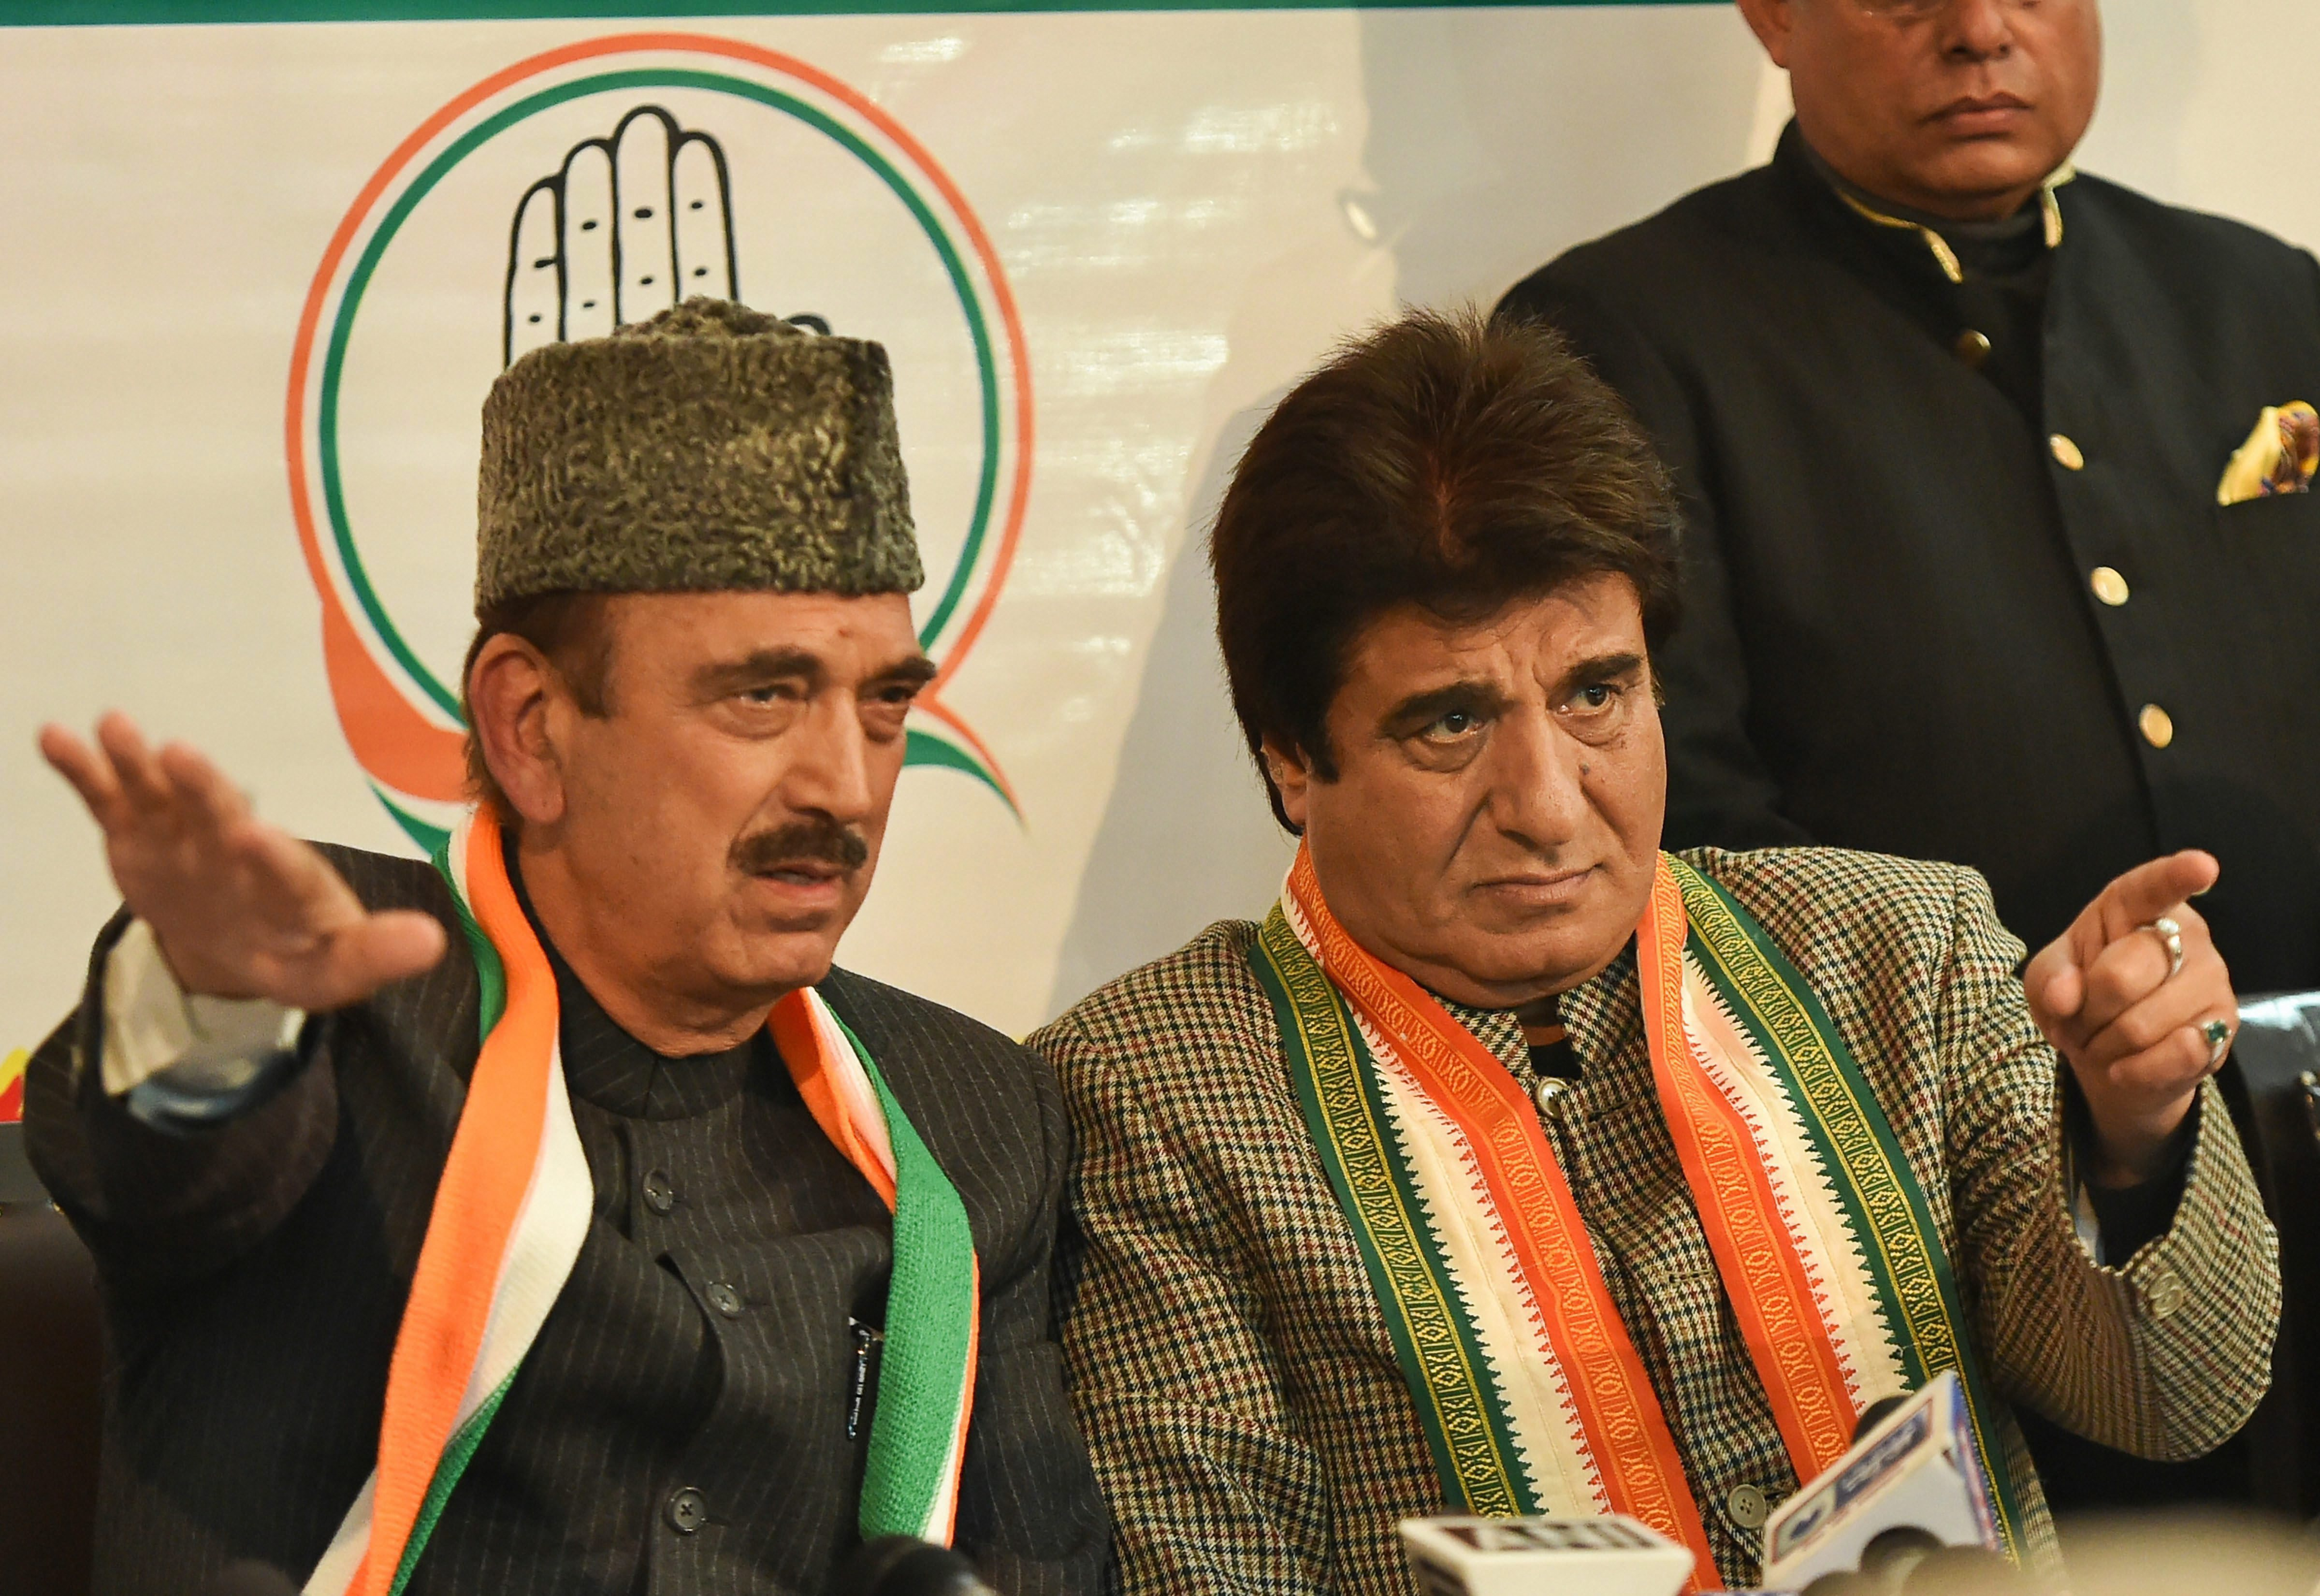 (Left) Senior Congress leader Ghulam Nabi Azad speaks to the media as UP Congress chief Raj Babbar looks on in Lucknow on January 13.